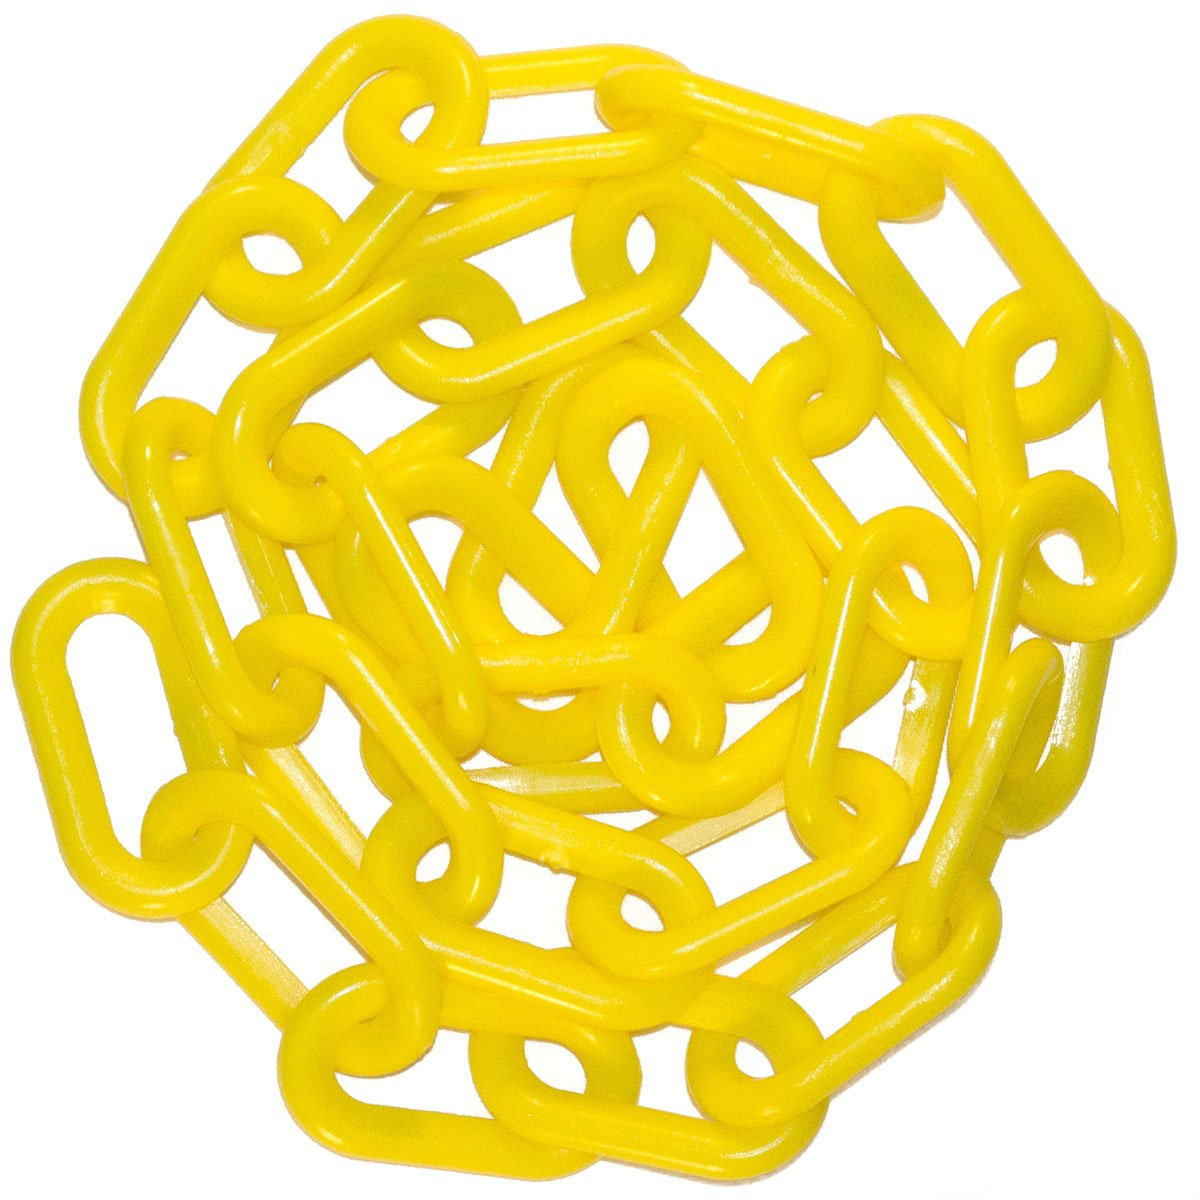 Mr. Chain Plastic Barrier Chain, Yellow, 2-Inch Link Diameter, 25-Foot Length (50002-25) by Mr. Chain